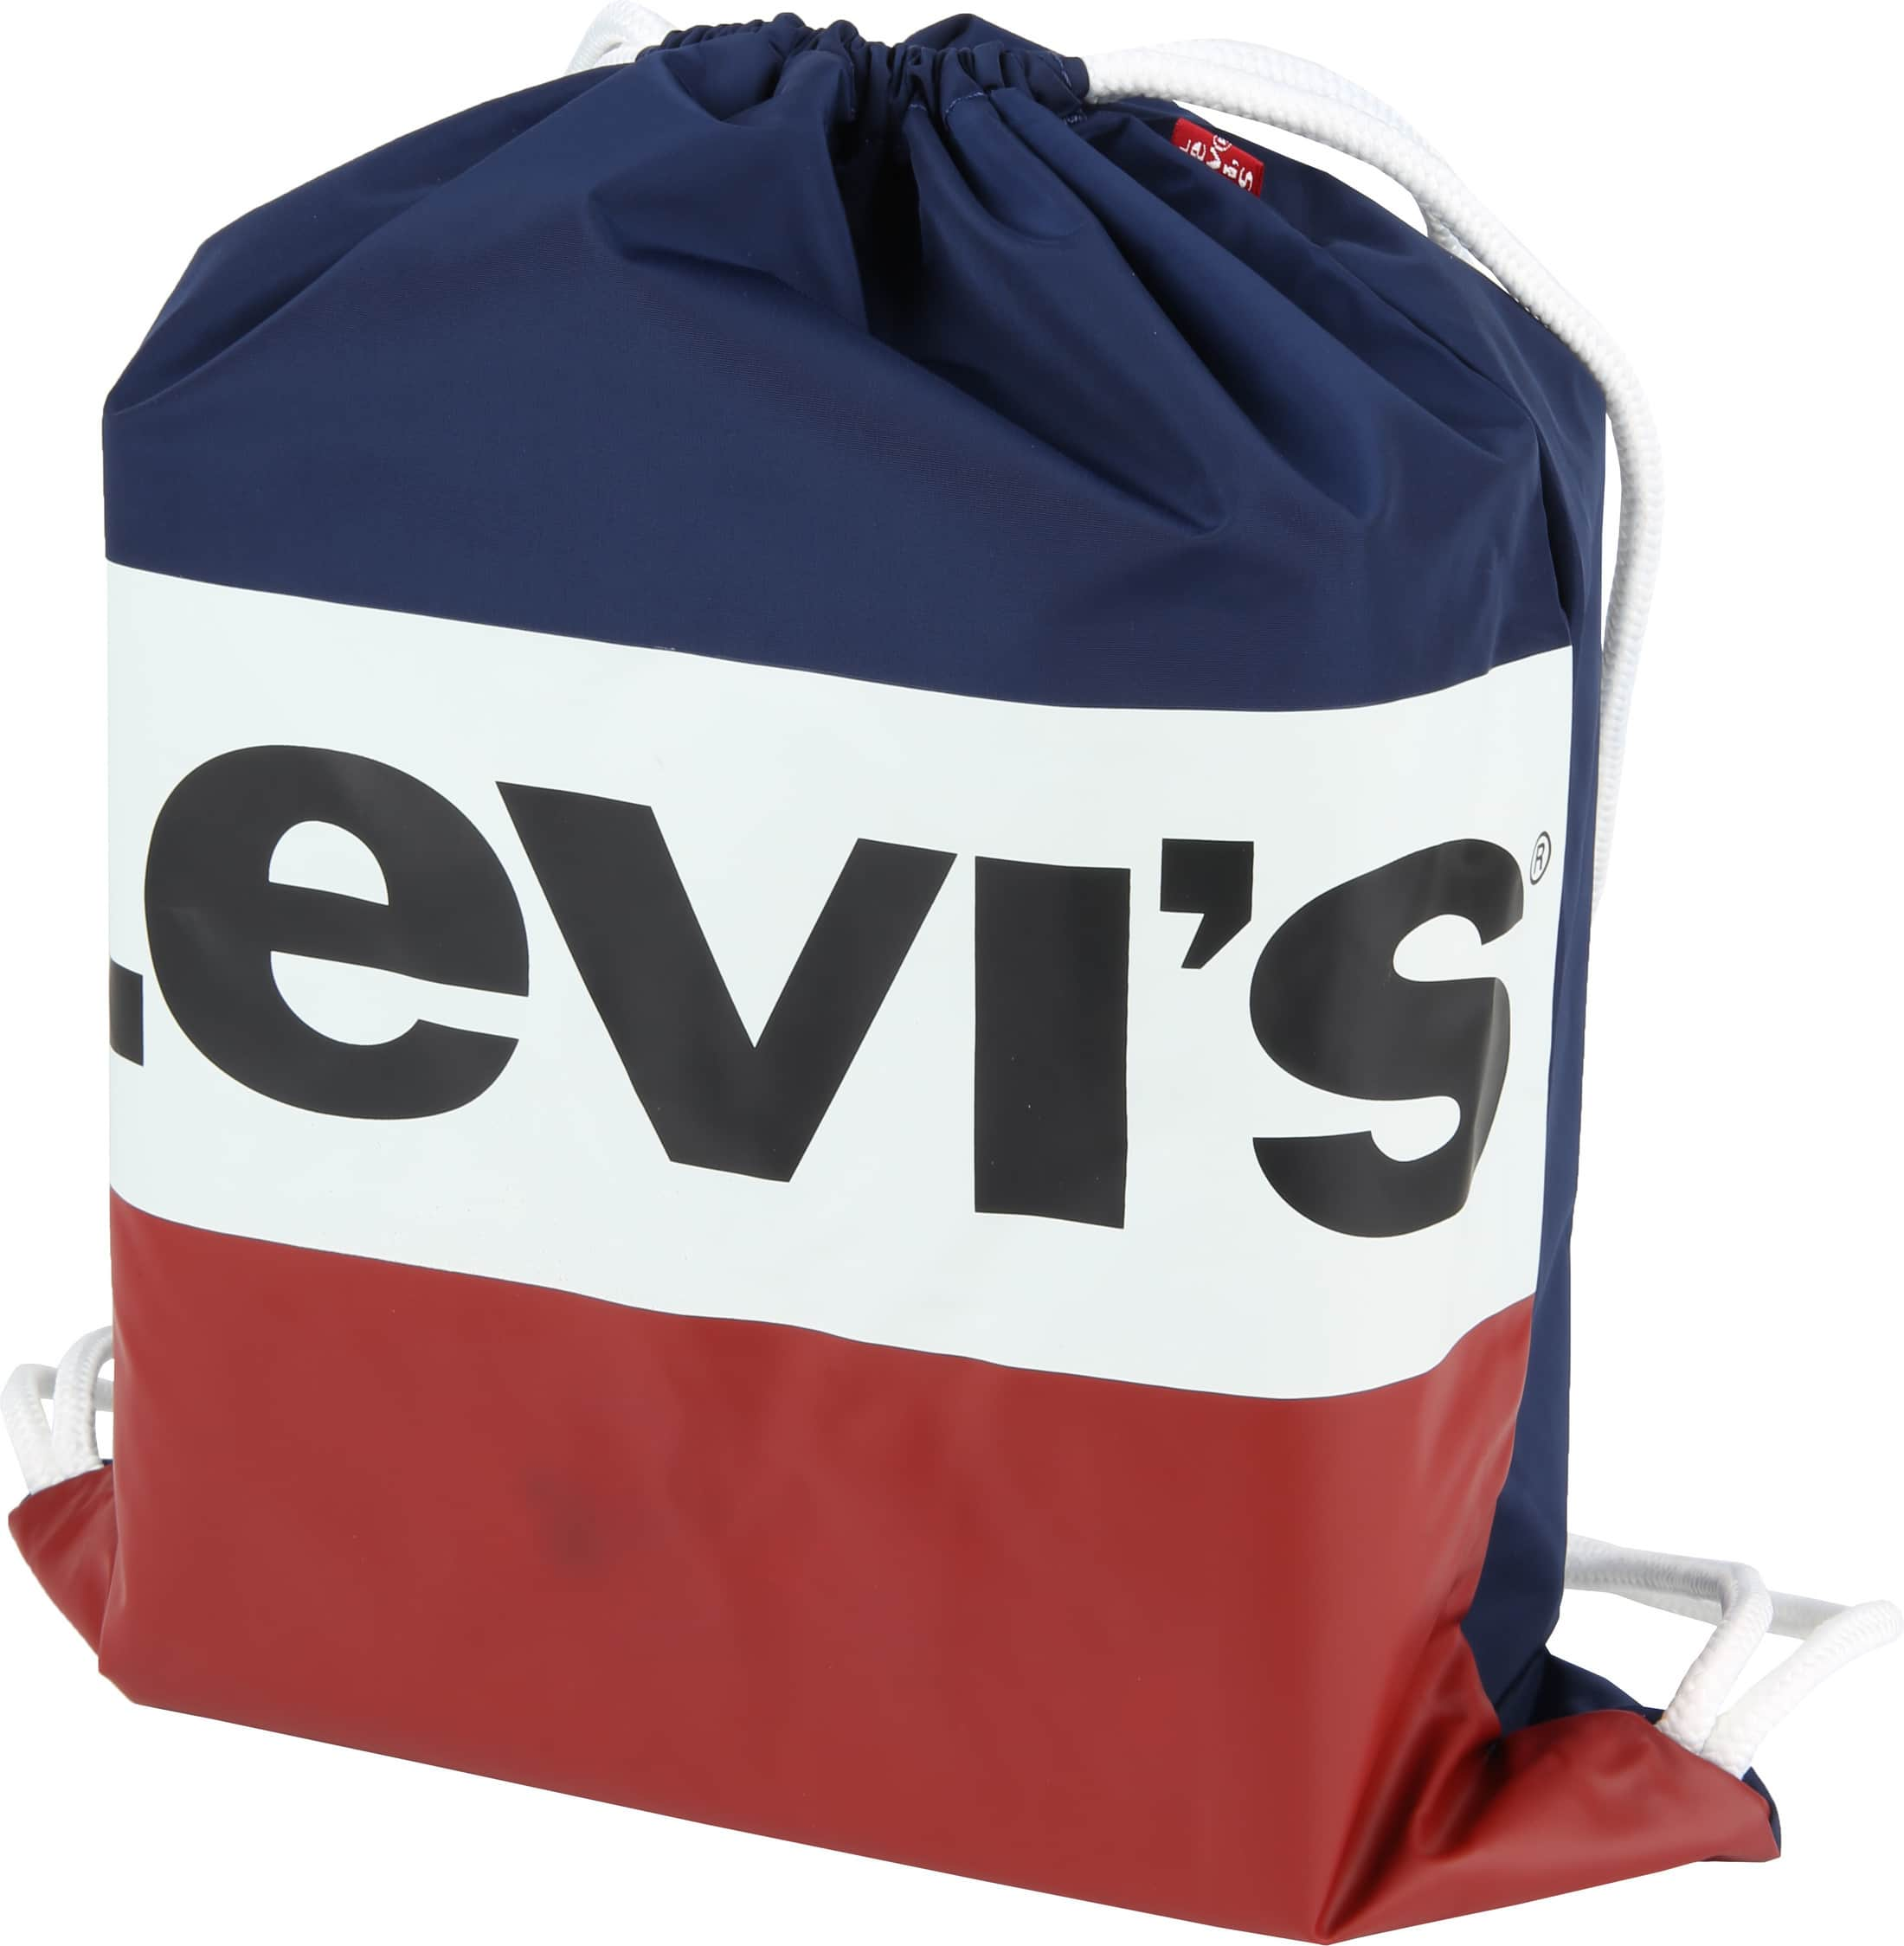 Levi's Tas Everyday Gym foto 1